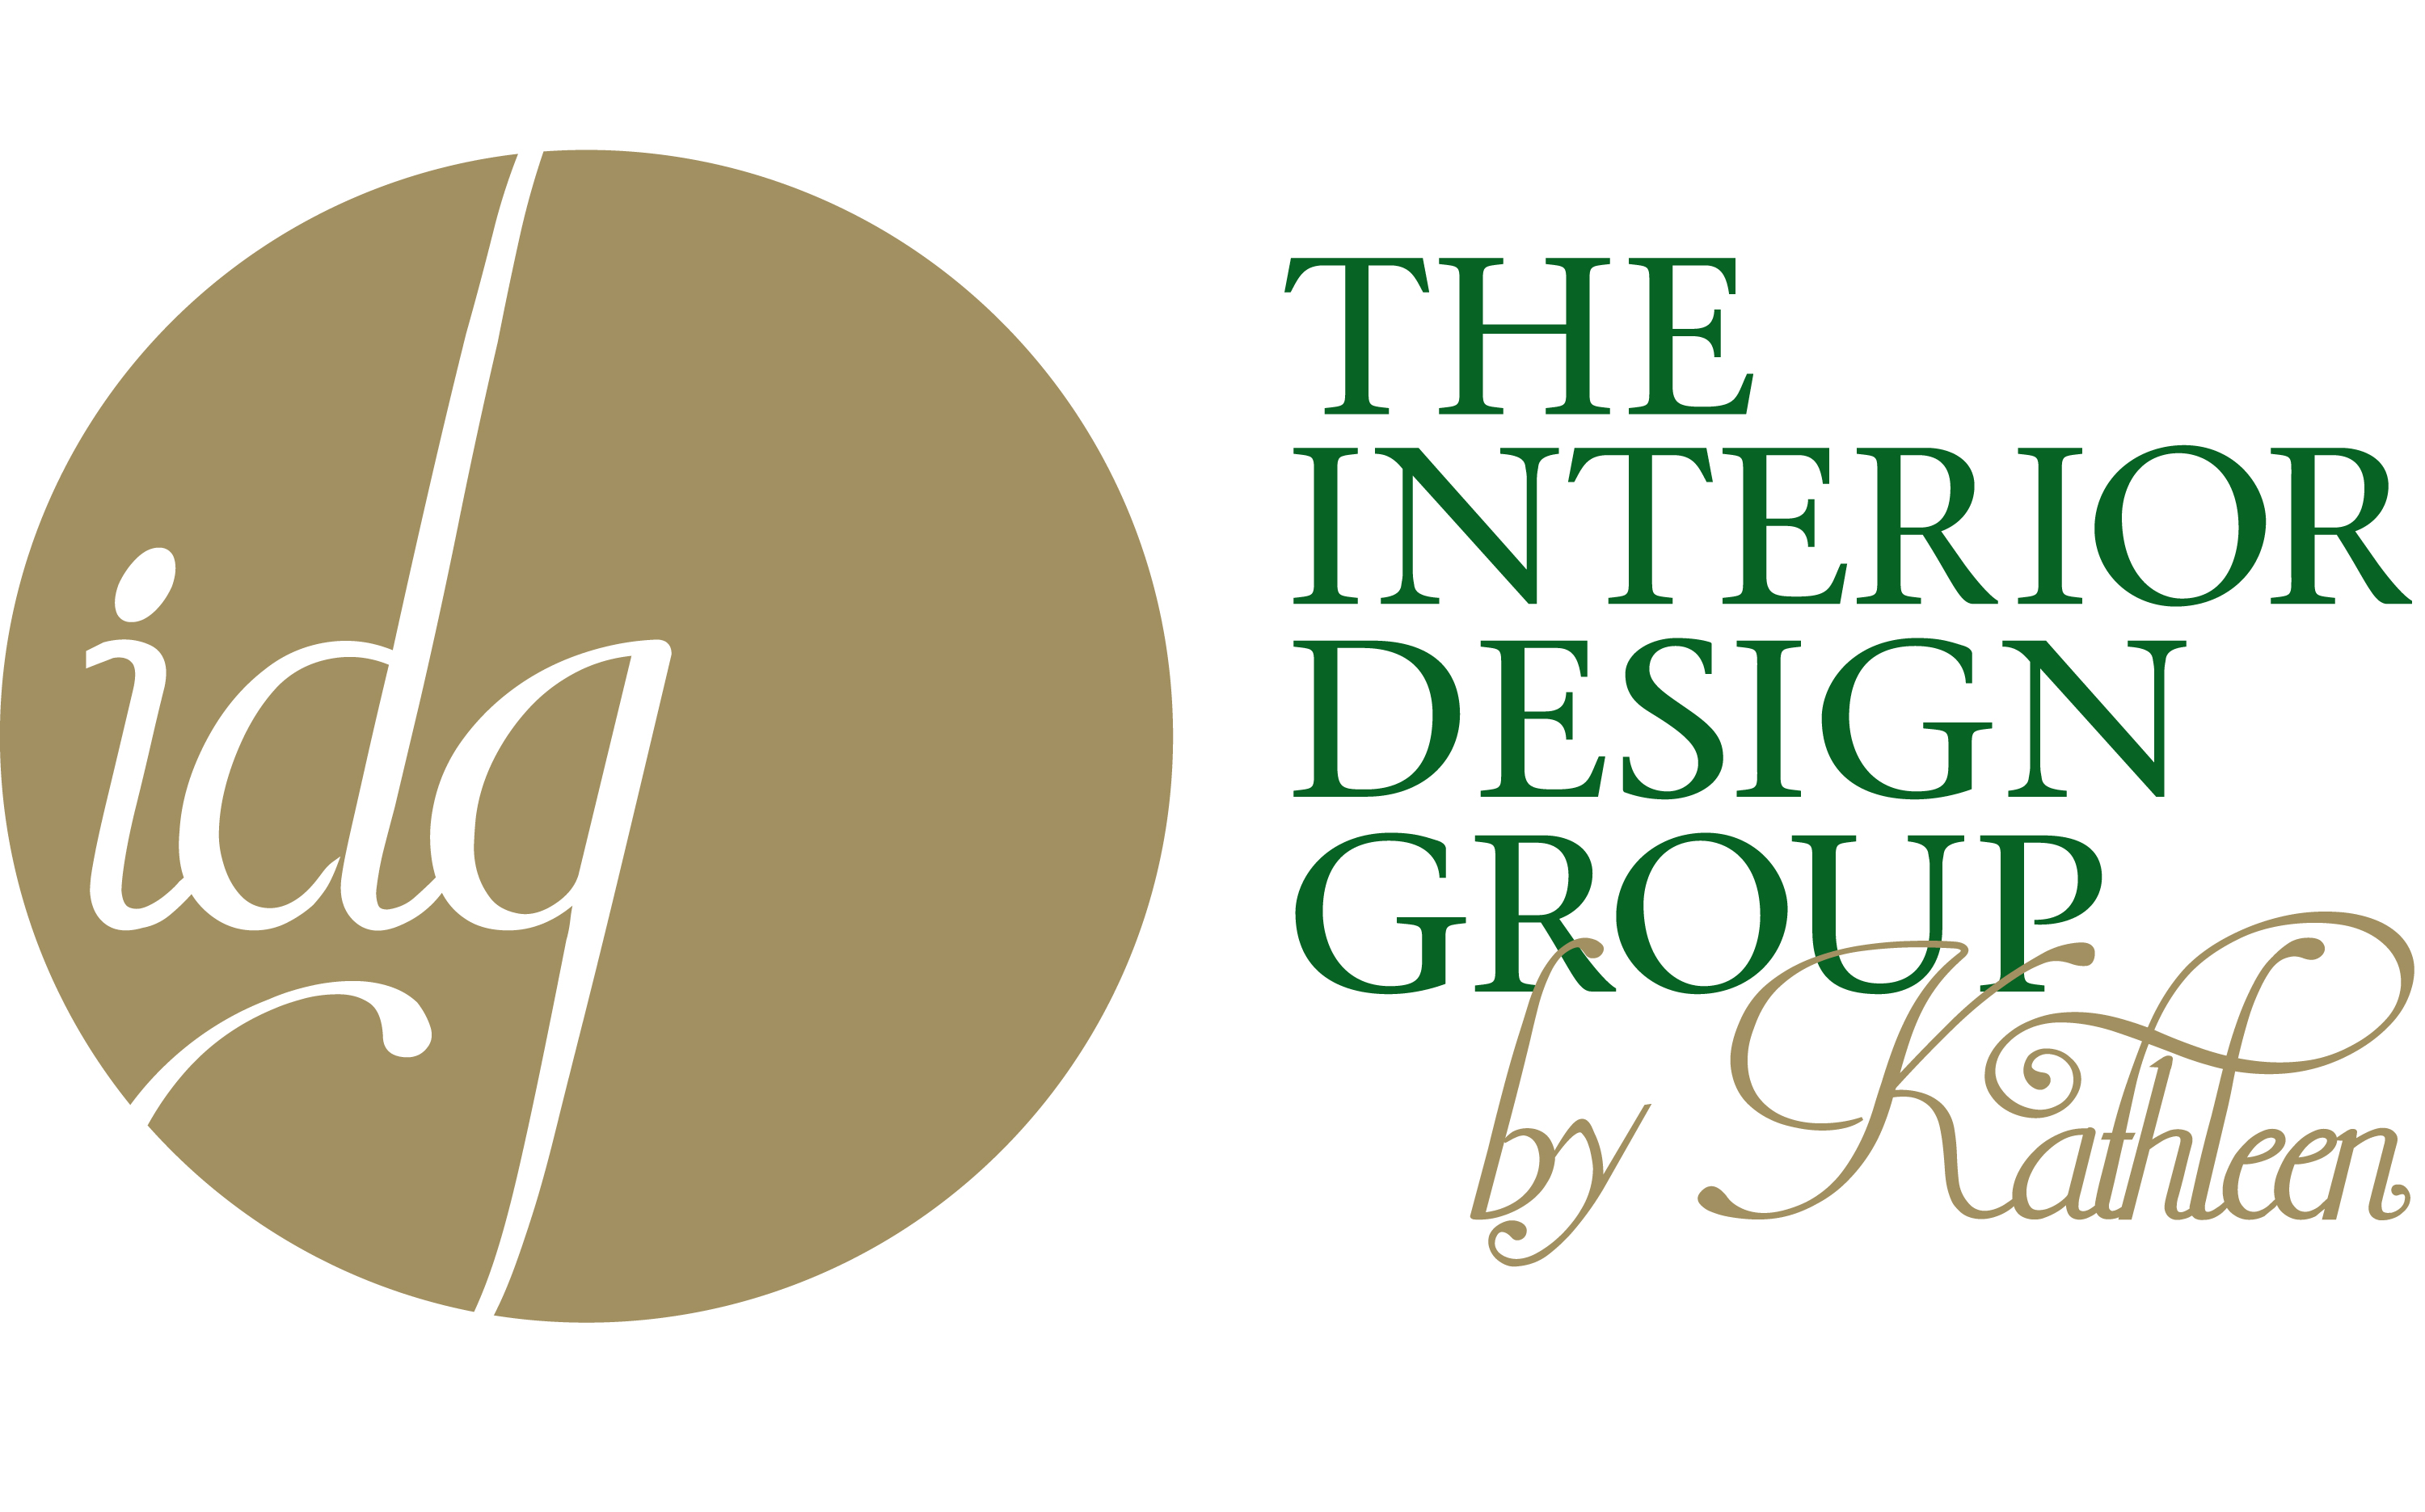 Interior design group by kathleen idg the interior for Interior design group